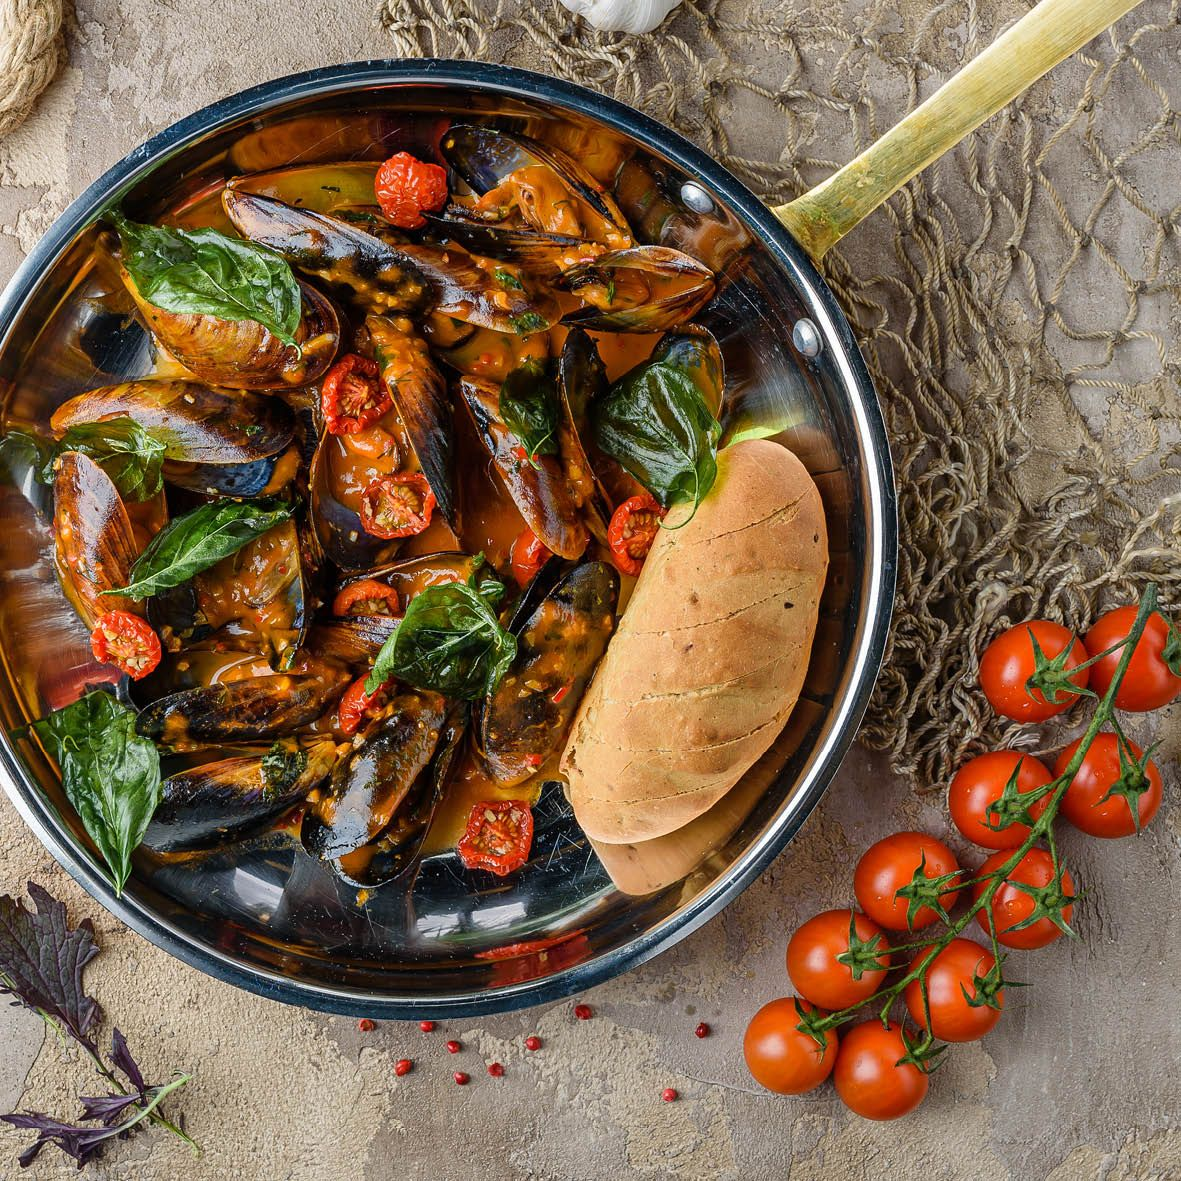 Tasmanian_Mussels_with_Tomato_Fennel_and_Basil.jpg